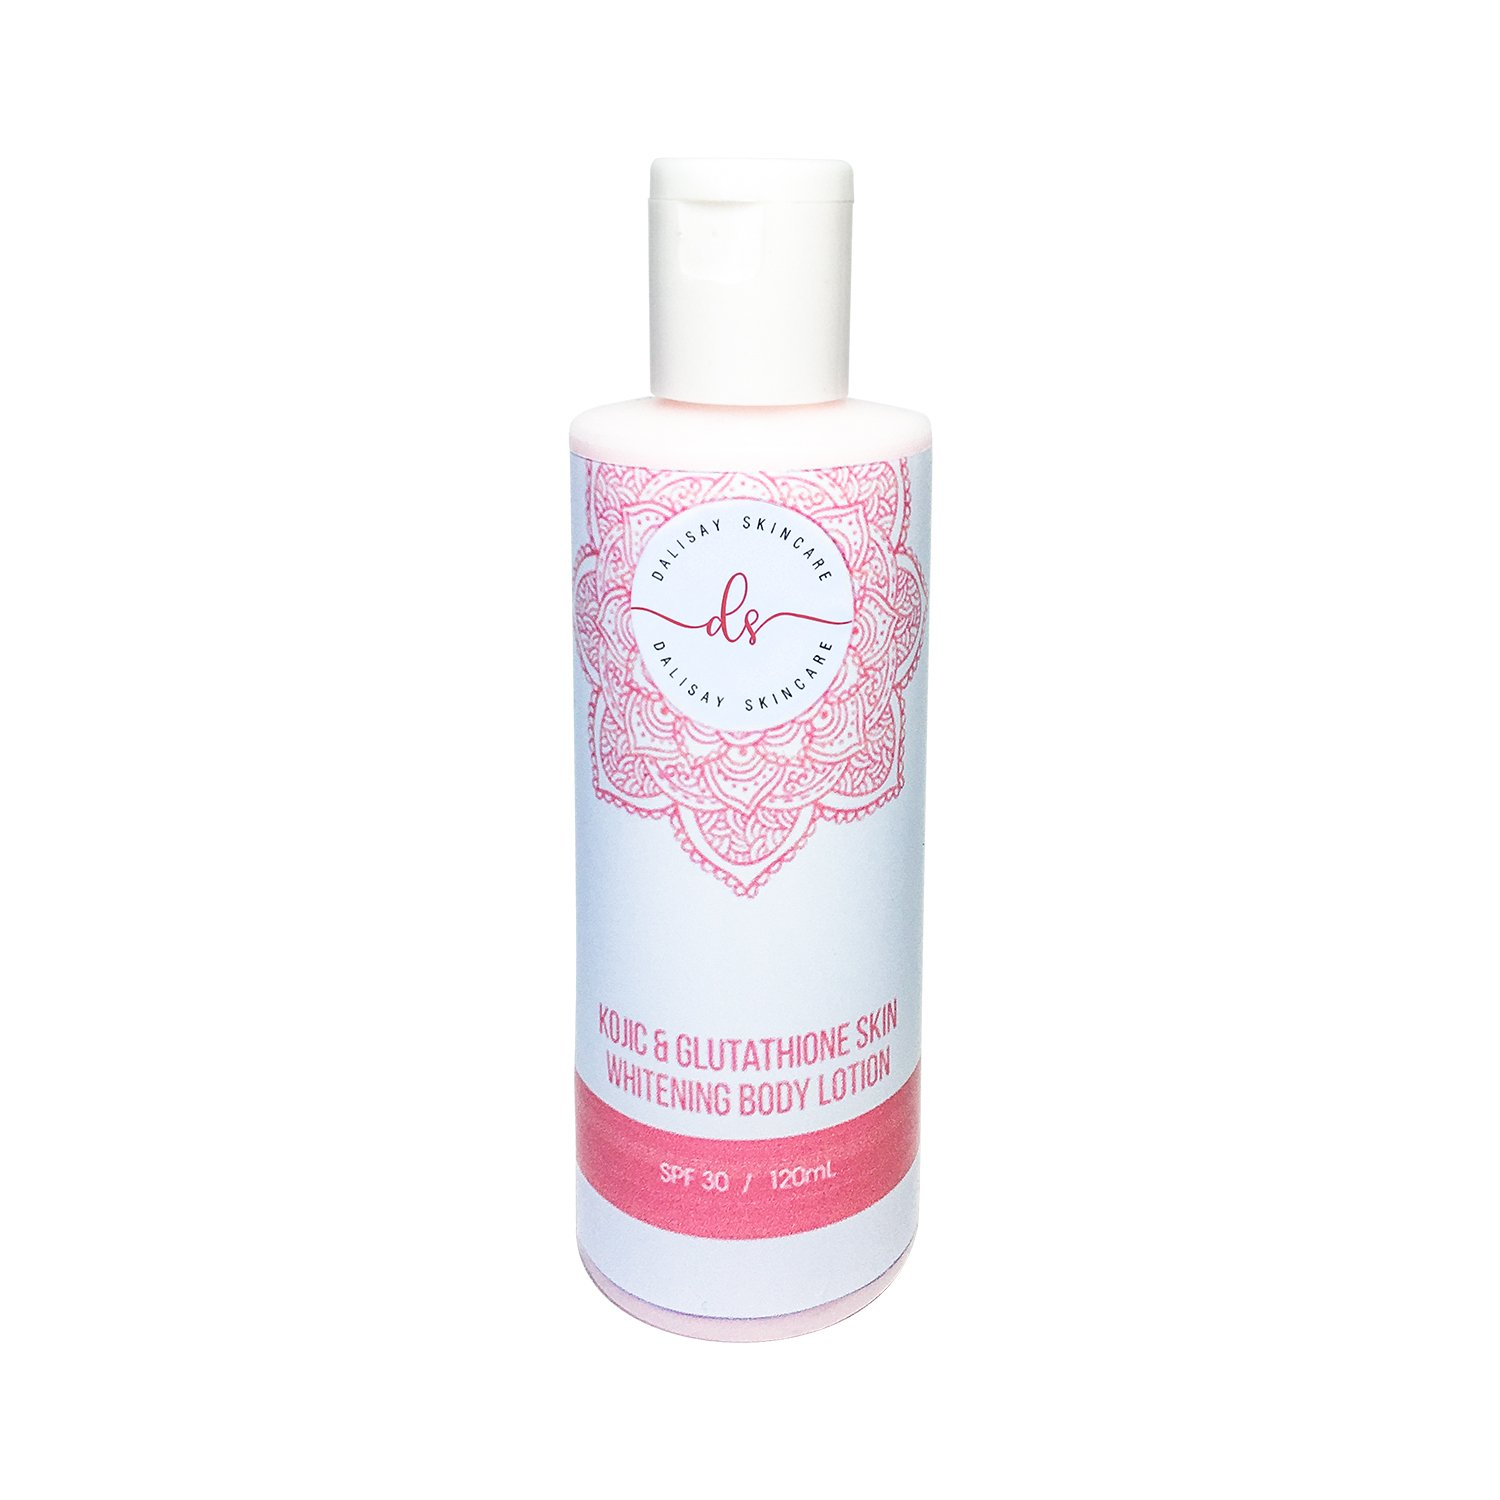 Skin Whitening Body Lotion - Kojic Acid & Glutathione Natural Skin Lightener with Vitamins and Plant Extracts SPF 30